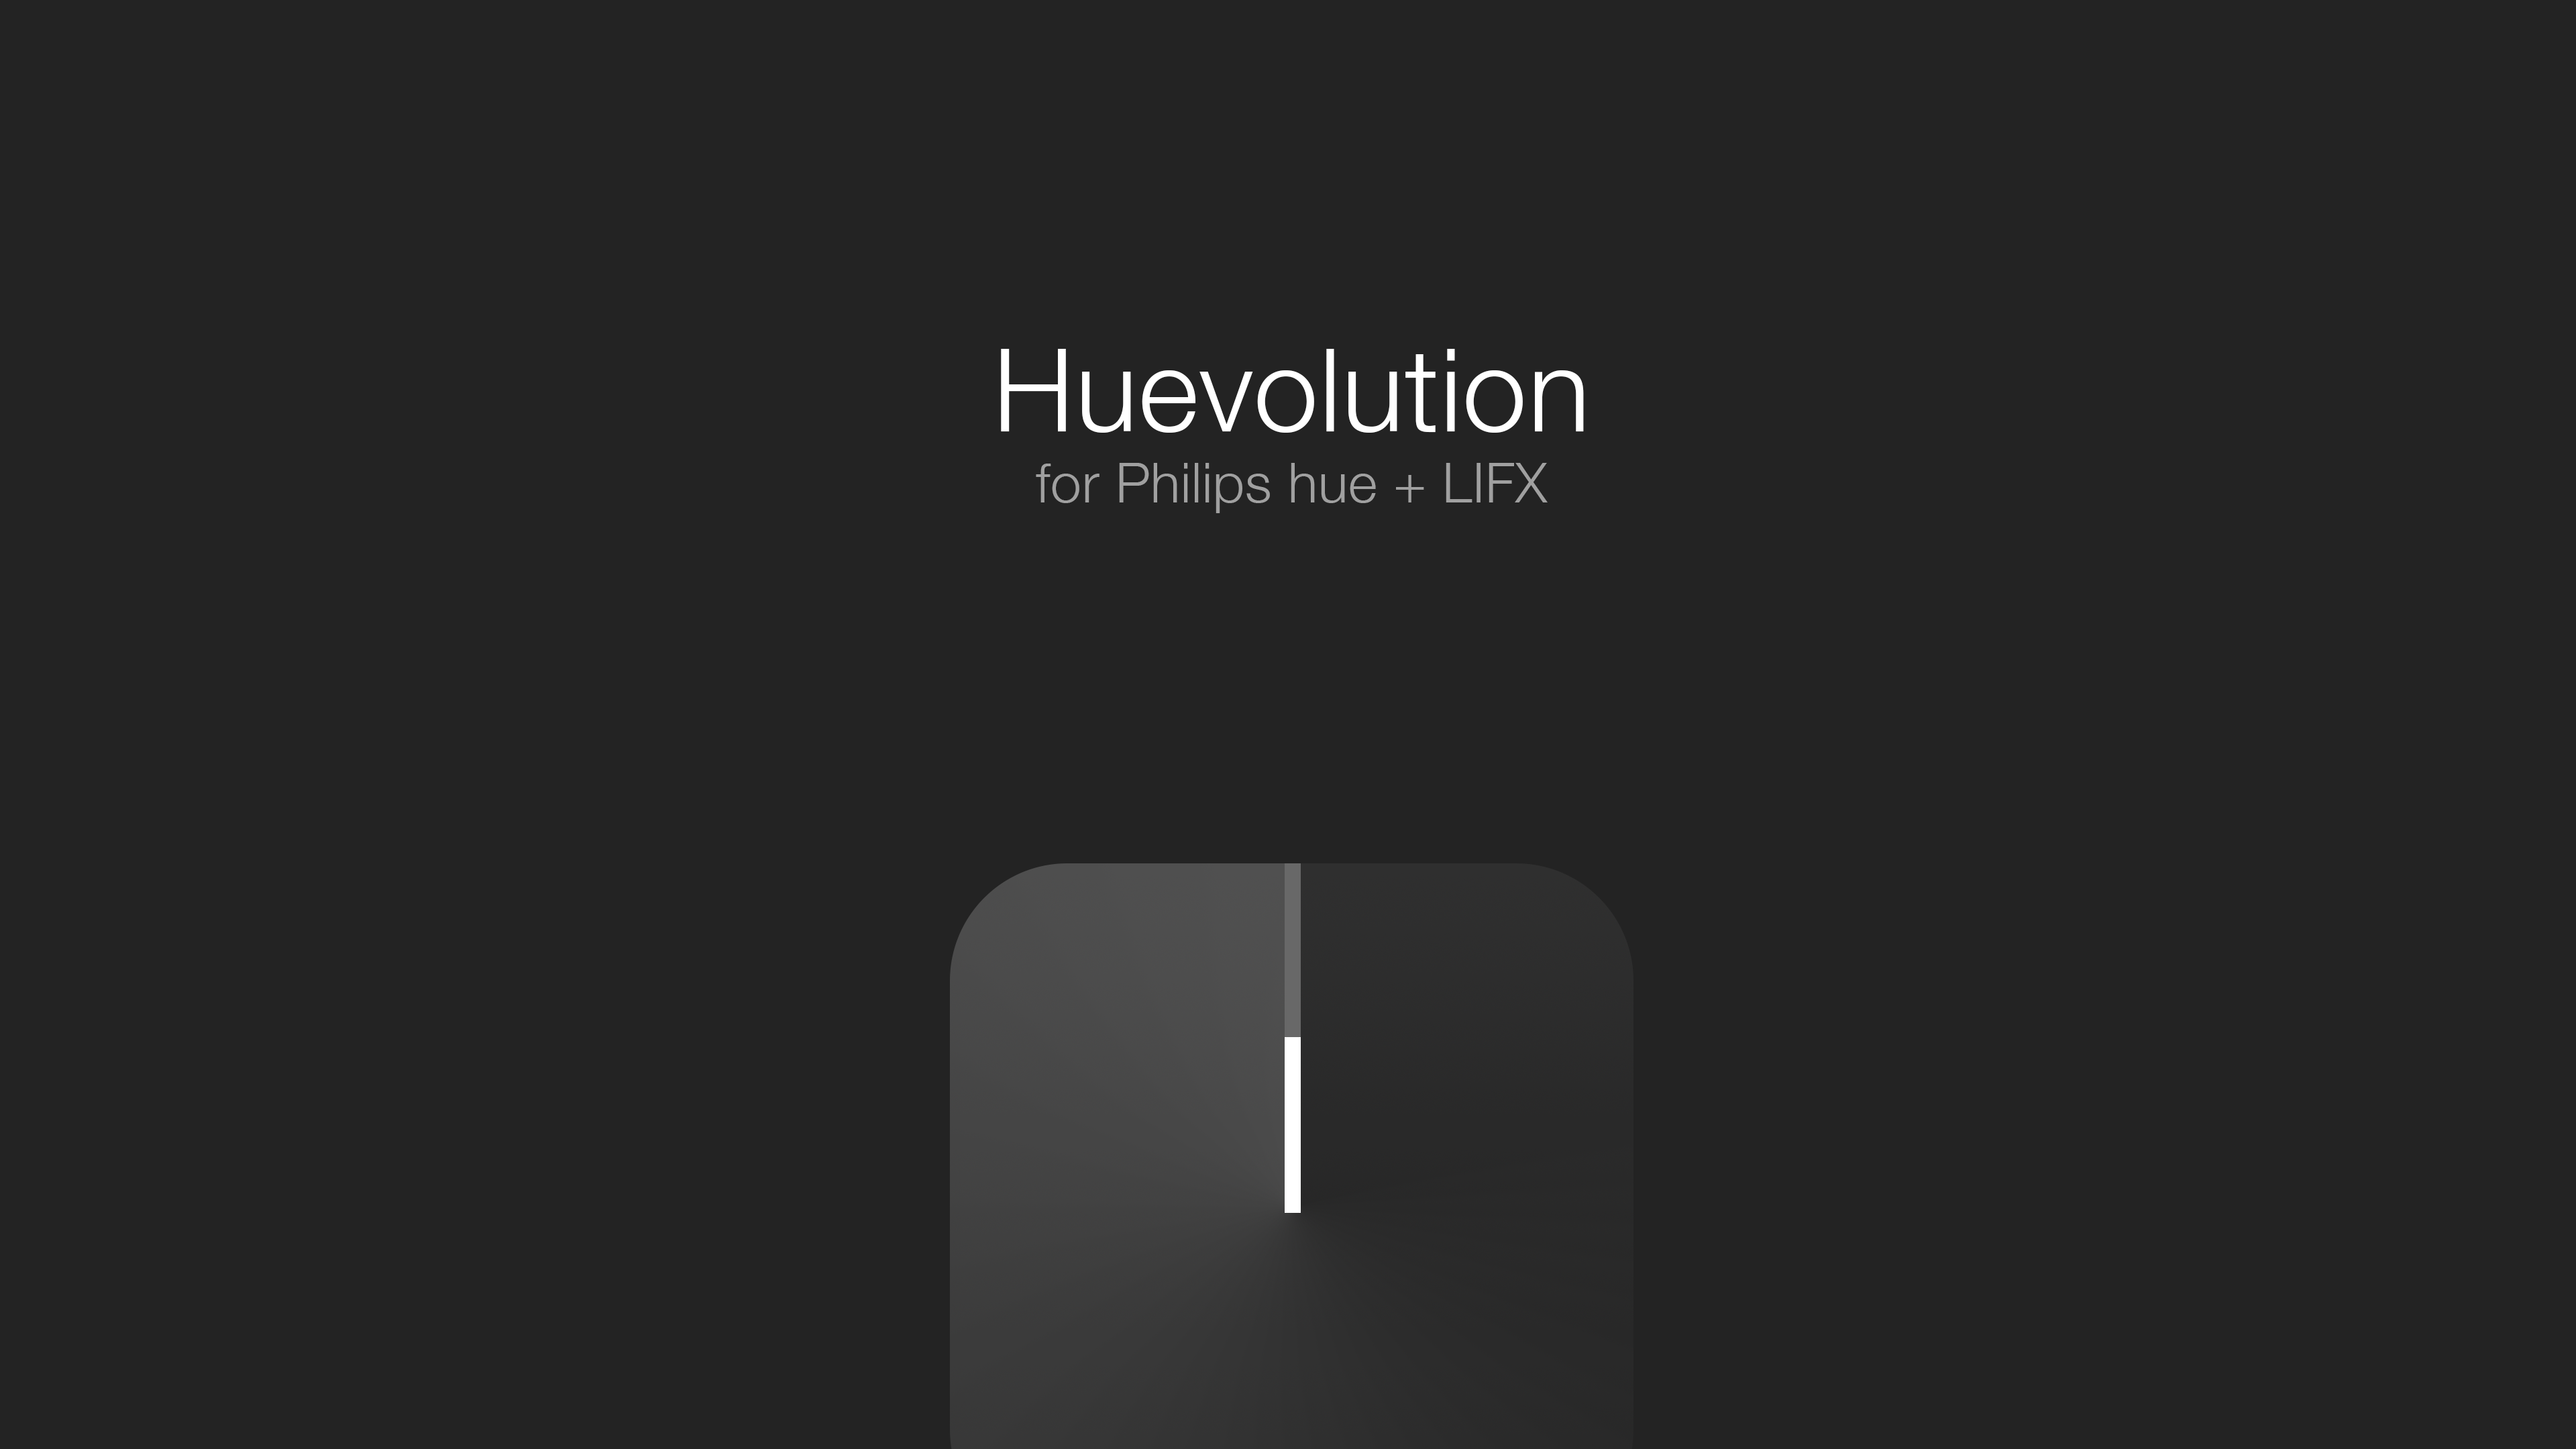 Besides Itu0027s Timeless Minimalistic And Lovely Detailed Design As A Product,  Huevolution Incorporates Years Of Research In Ambient Computing And The ...